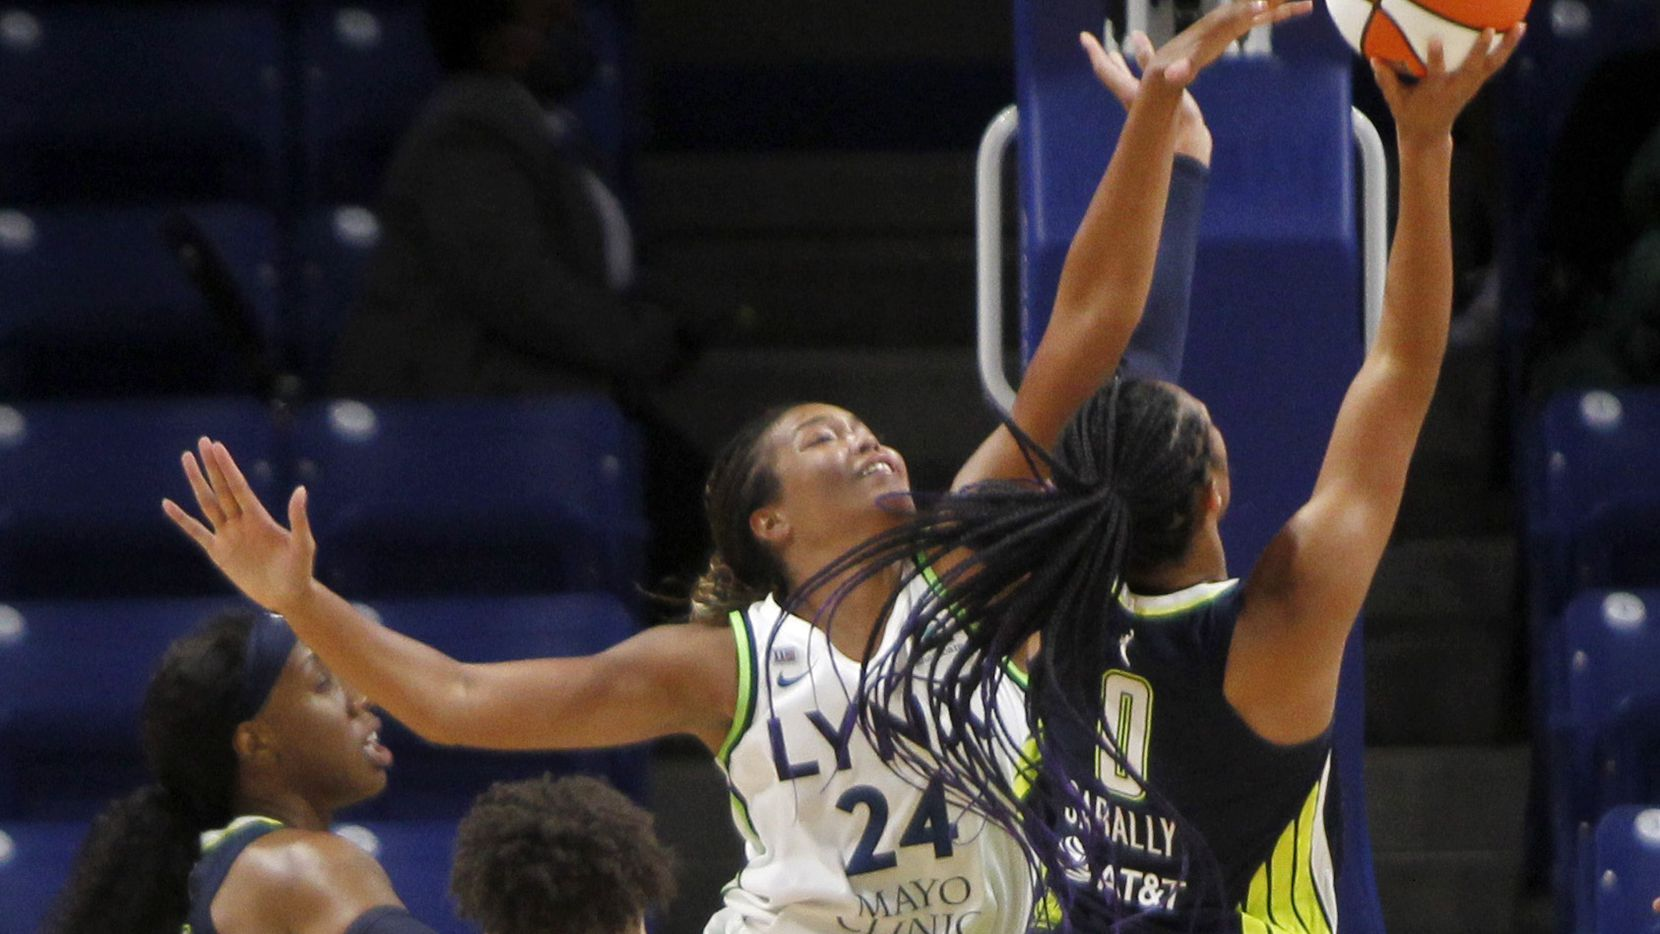 Dallas Wings forward Satou Sabally (0) drives to the basket and draws a foul by Minnesota Lynx forward Napheesa Collier (24) during 2nd quarter action. The two teams played their WNBA game at College Park Center on the campus of the University of Arlington on June 17, 2021